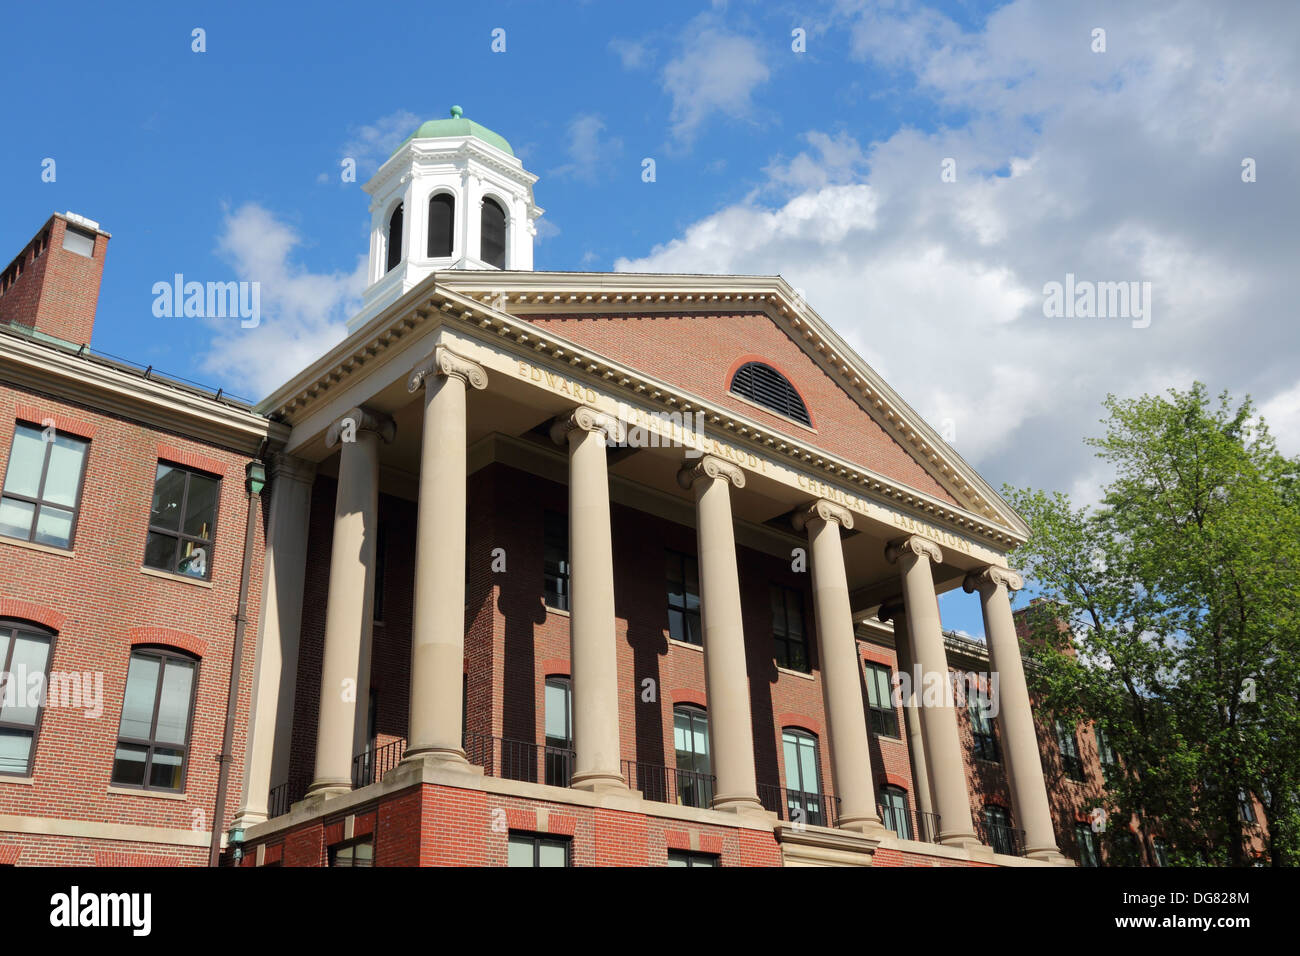 Cambridge, Massachusetts in the United States. Famous Harvard University - Edward Mallinckrodt chemical laboratory. - Stock Image